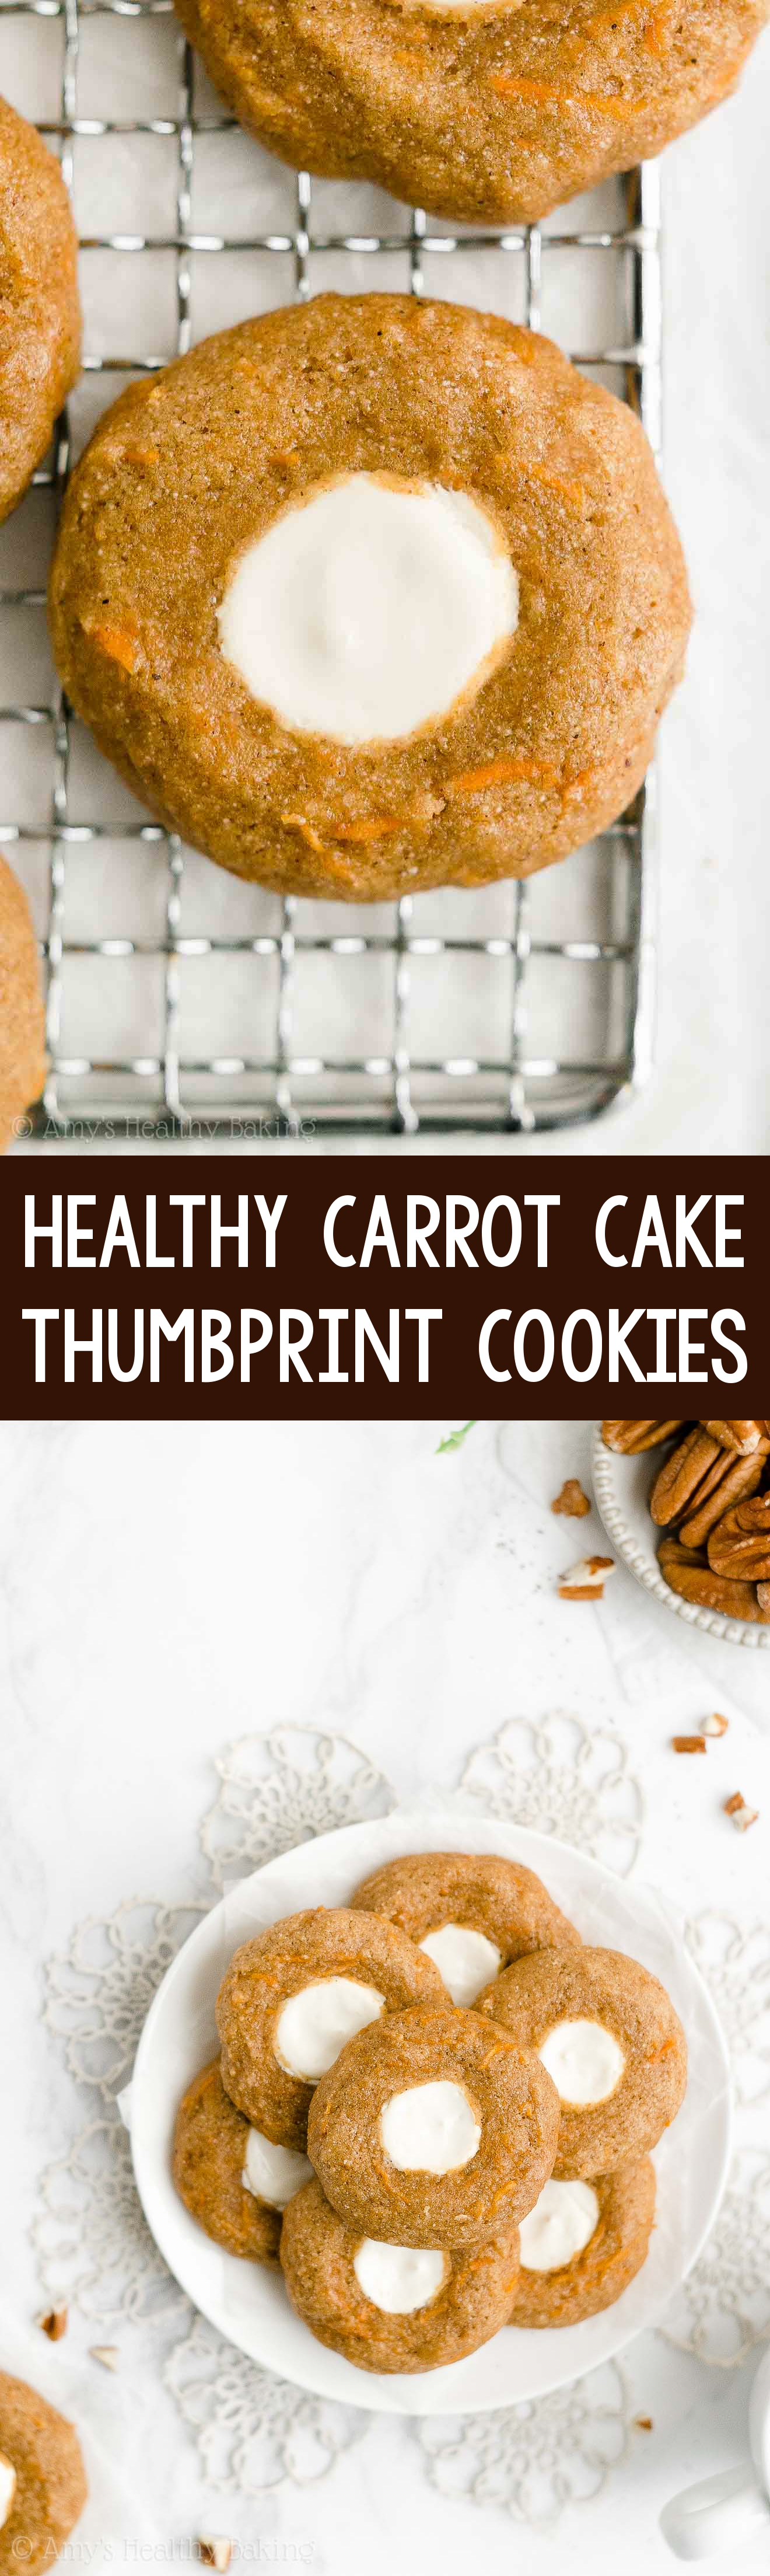 Best Easy Healthy Homemade Carrot Cake Cookies with Cream Cheese Frosting Filling